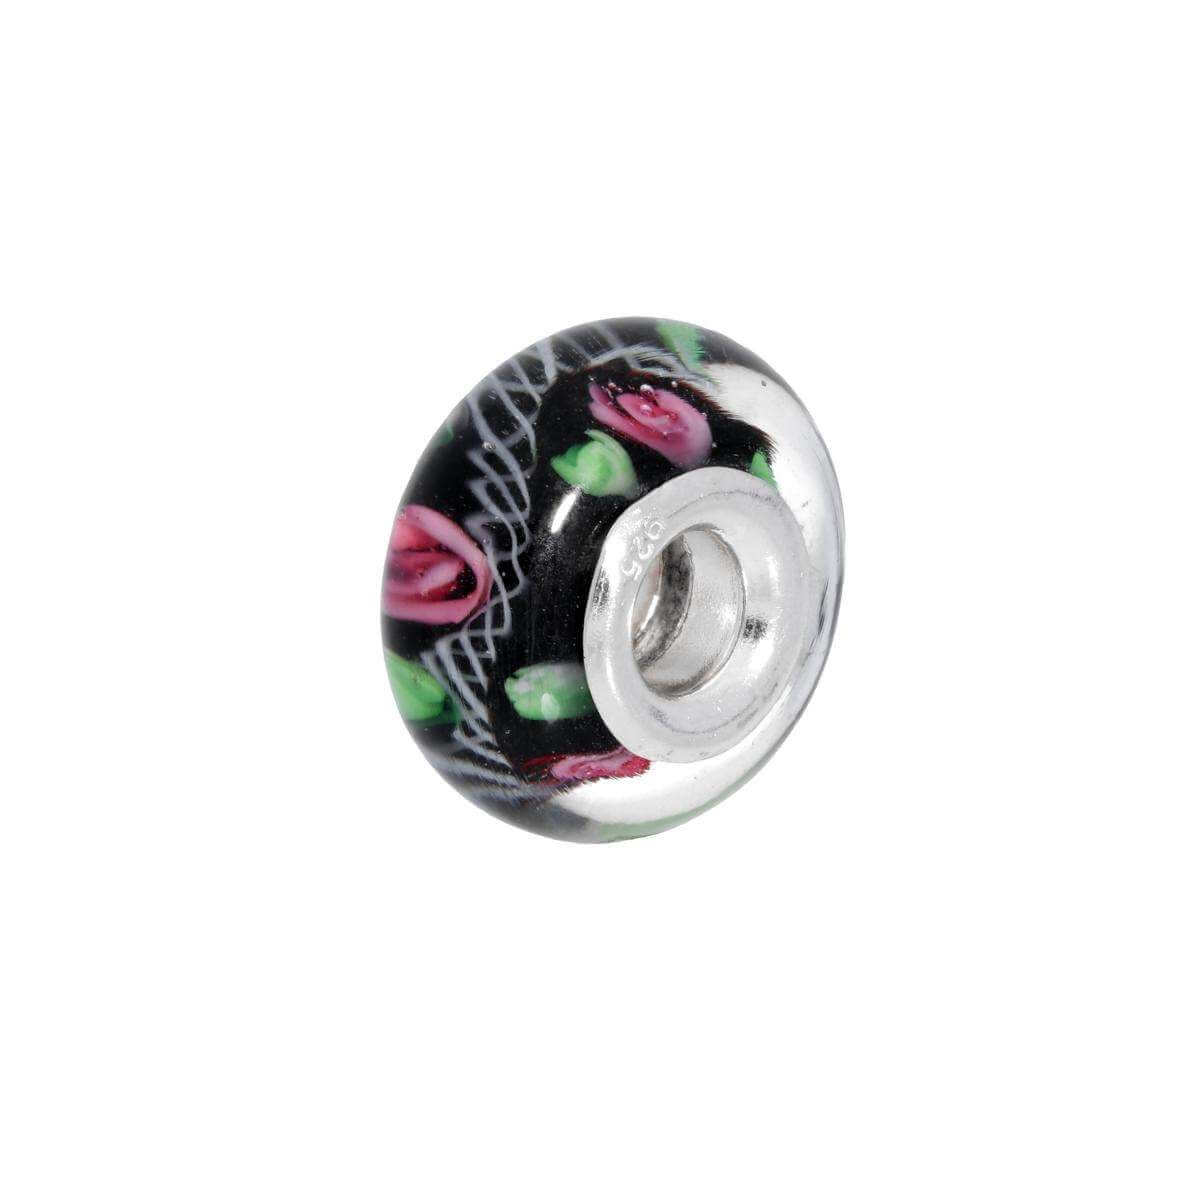 Sterling Silver Black Glass Bead Charm with Pink Green and White Detailing